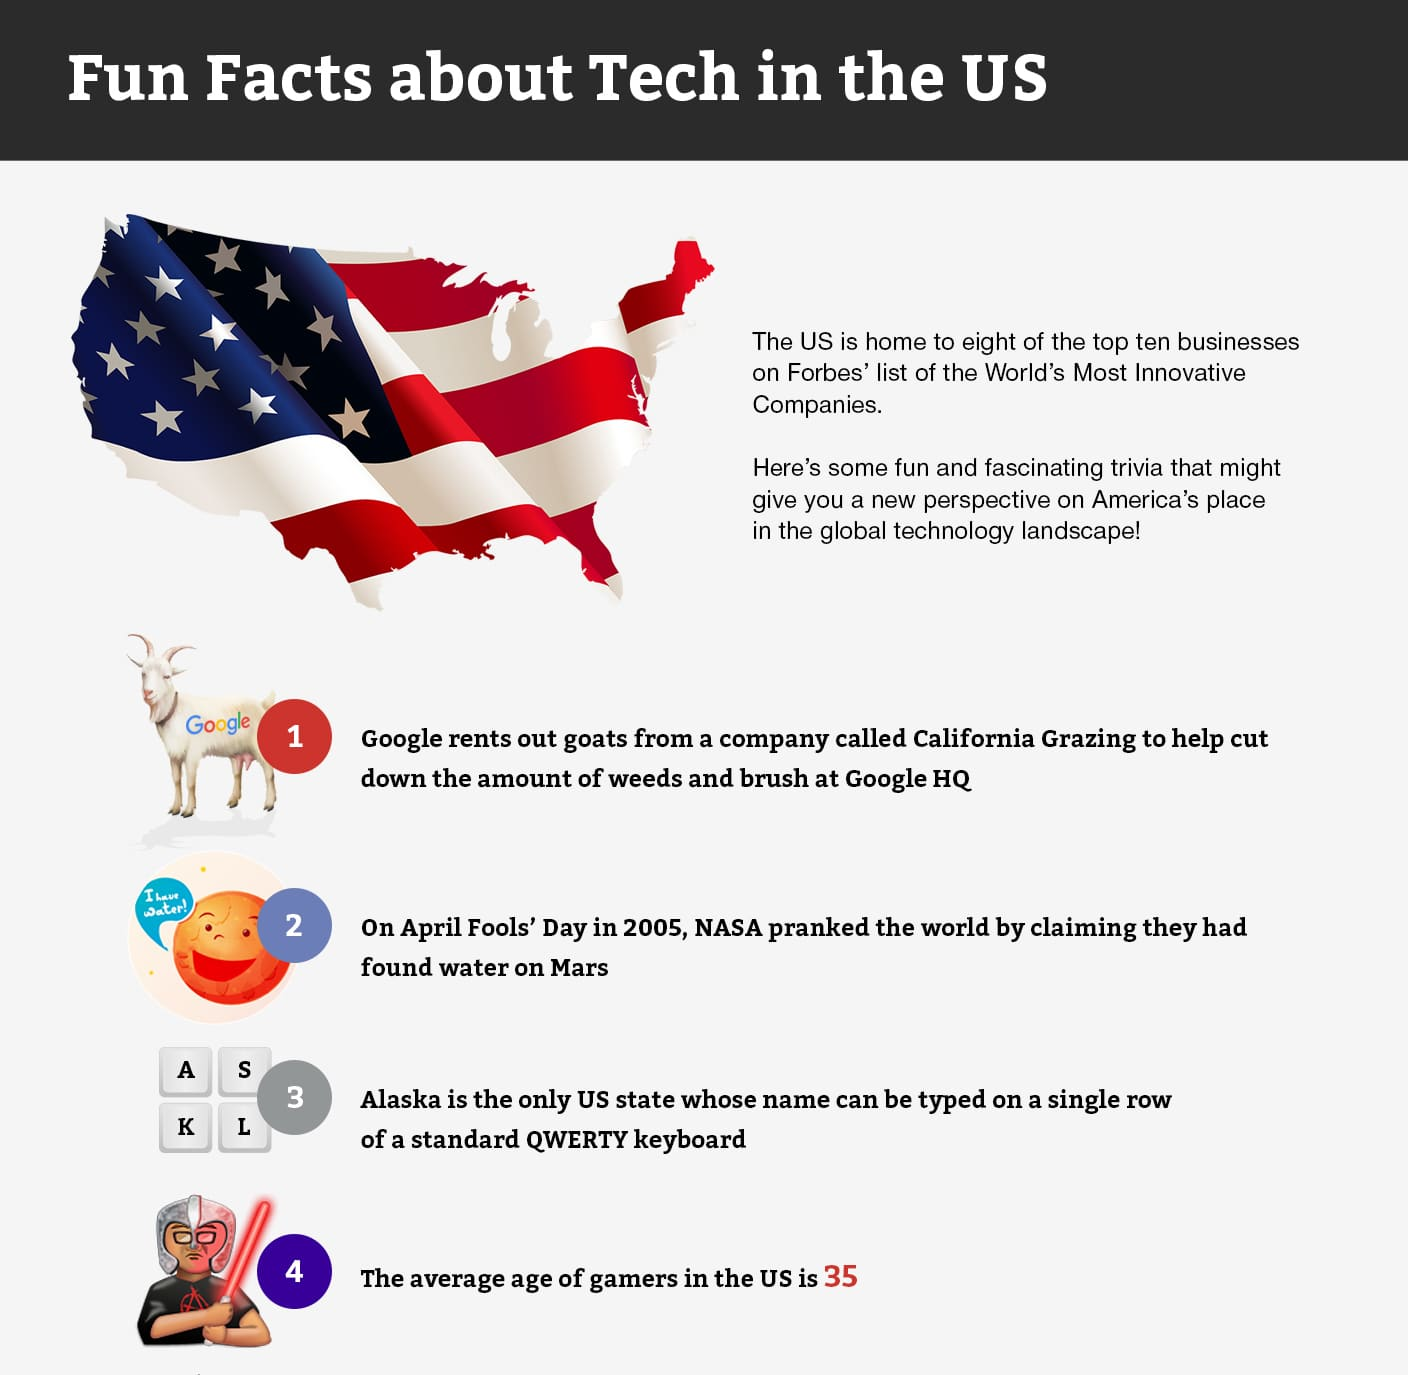 Infographic by redwerk fun facts about tech in the us for Interesting fact about america